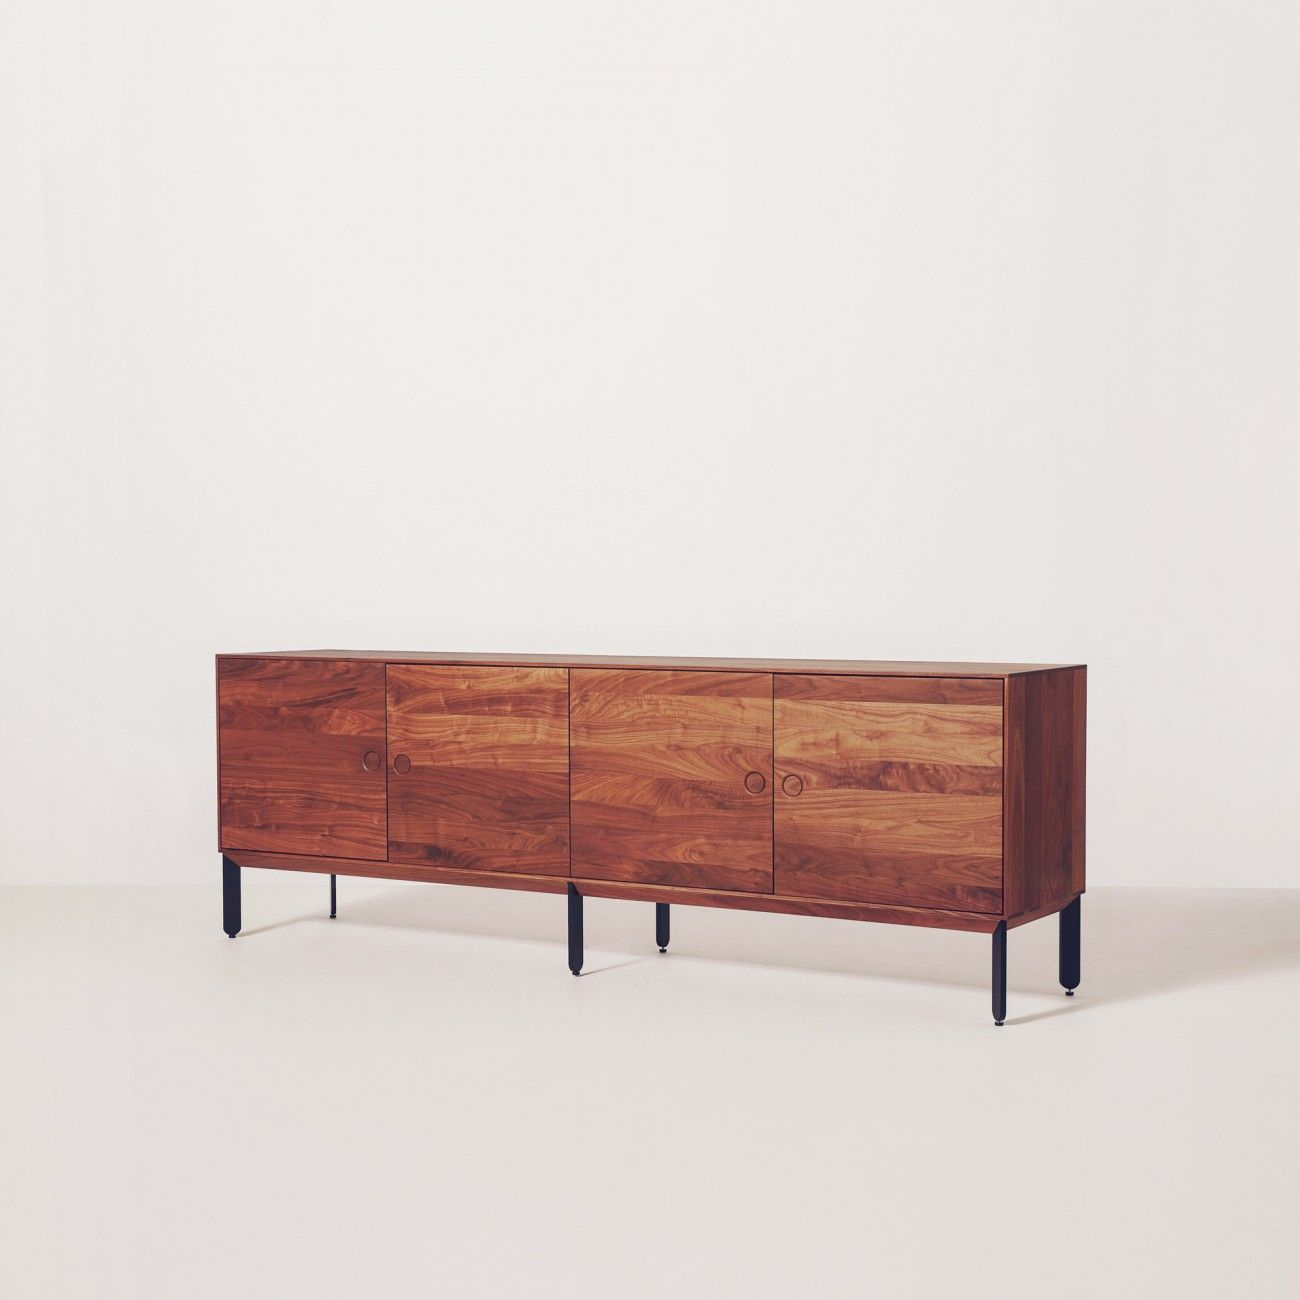 Kin Long   Sideboards   Storage   Catalogue   Claudia Marks In Ruskin Sideboards (Photo 28 of 30)